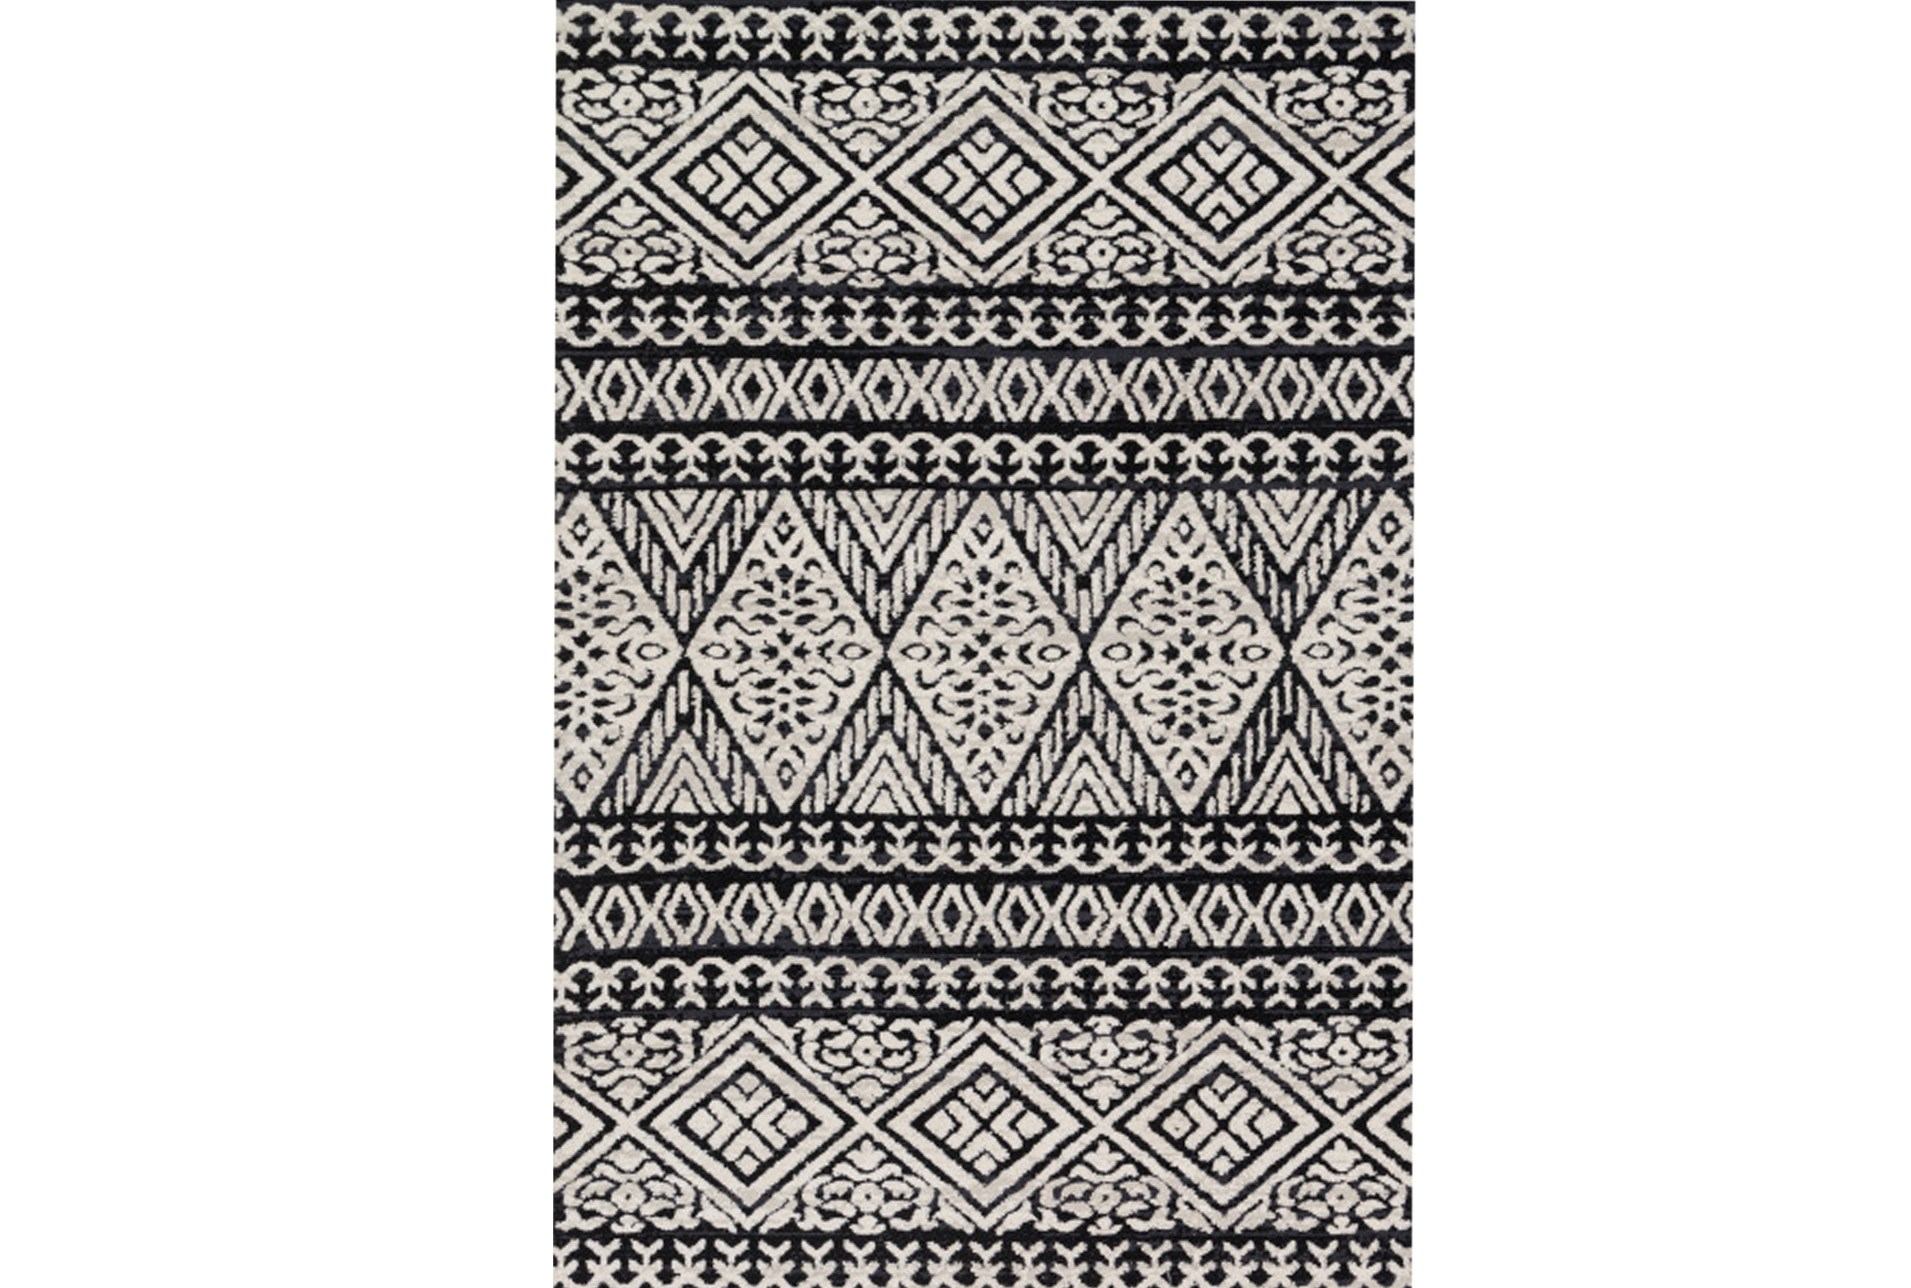 60x90 Rug Magnolia Home Lotus Diamond Black Silver By Joanna Gaines Qty 1 Has Been Successfully Added To Your Cart